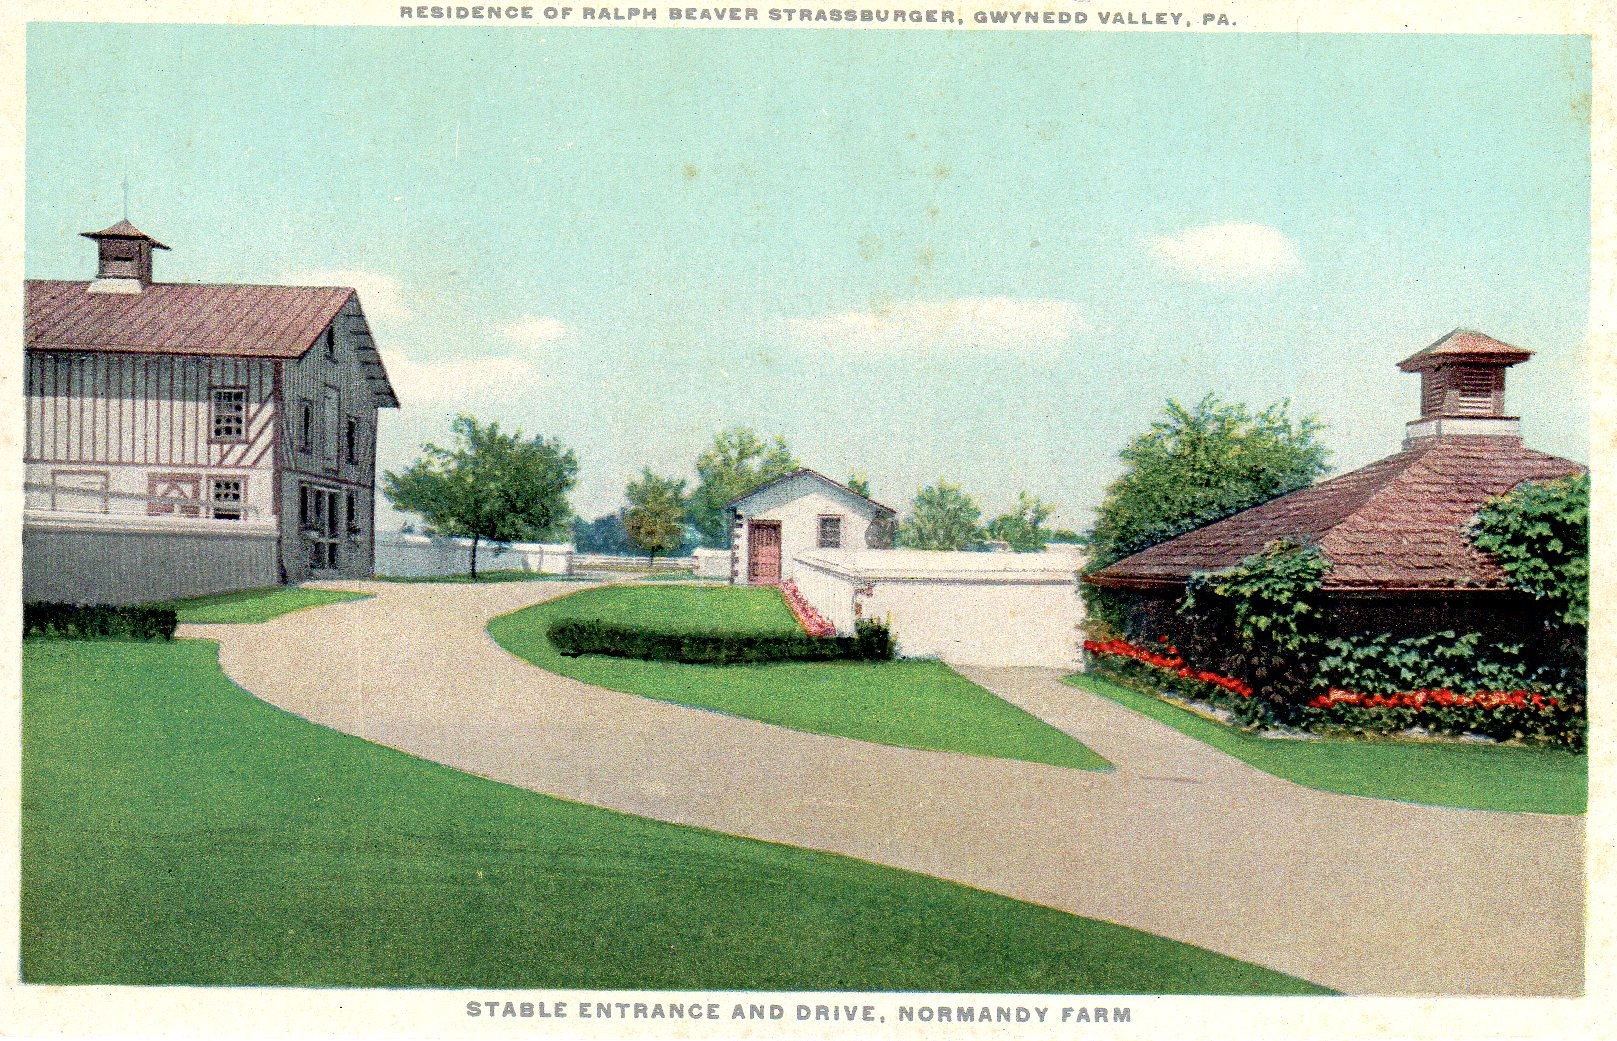 Post Card Collection (E Simon)_2682_79_Home Ralph Beaver Strassburger, Gwynedd Valley, Pa_Stable Entrance & Drive, Normandy Farm